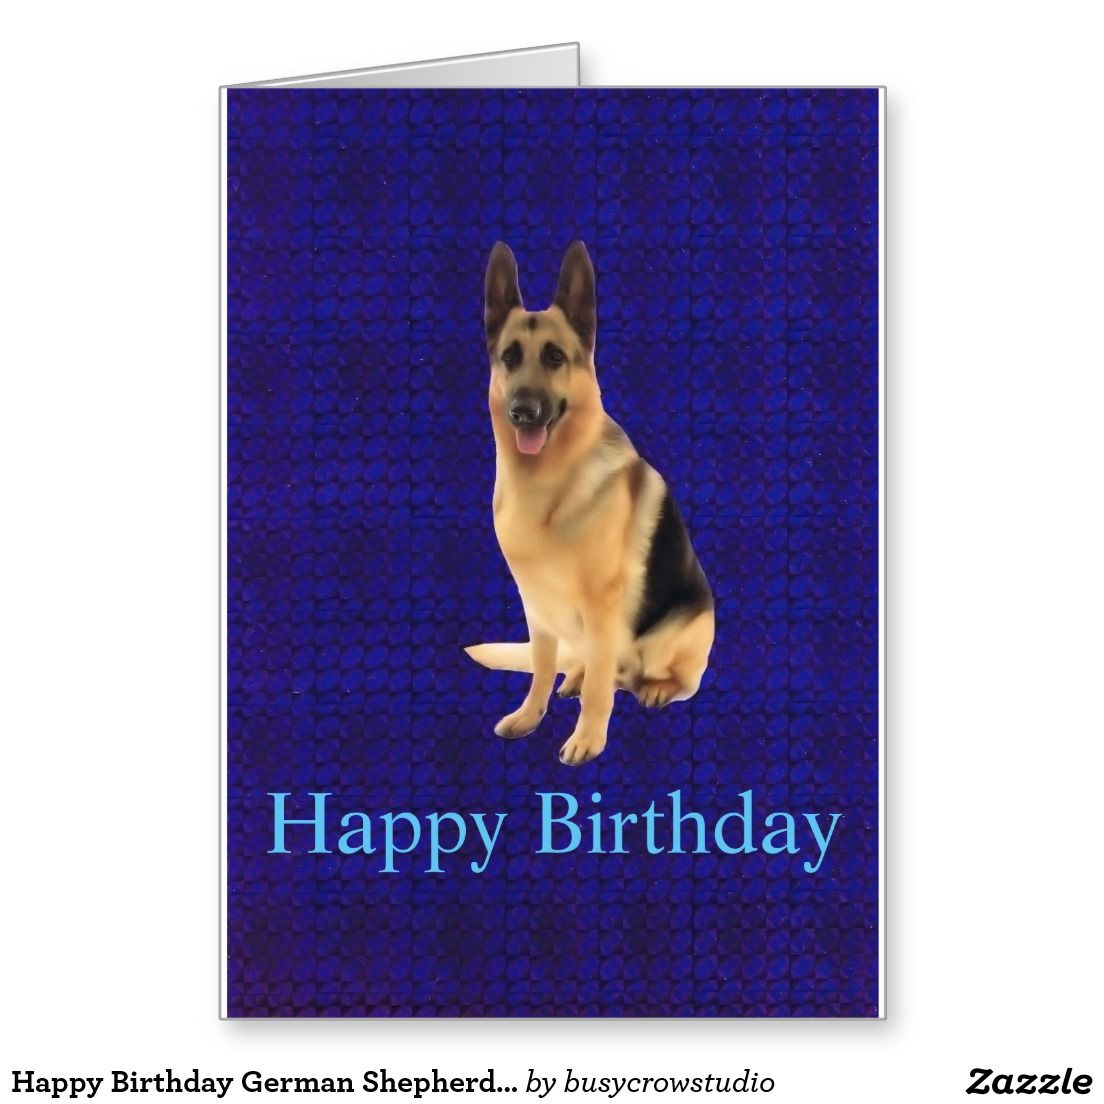 happy birthday german shepherd greeting ; 2c0c4d9c0b0d18461cad474fd1702526